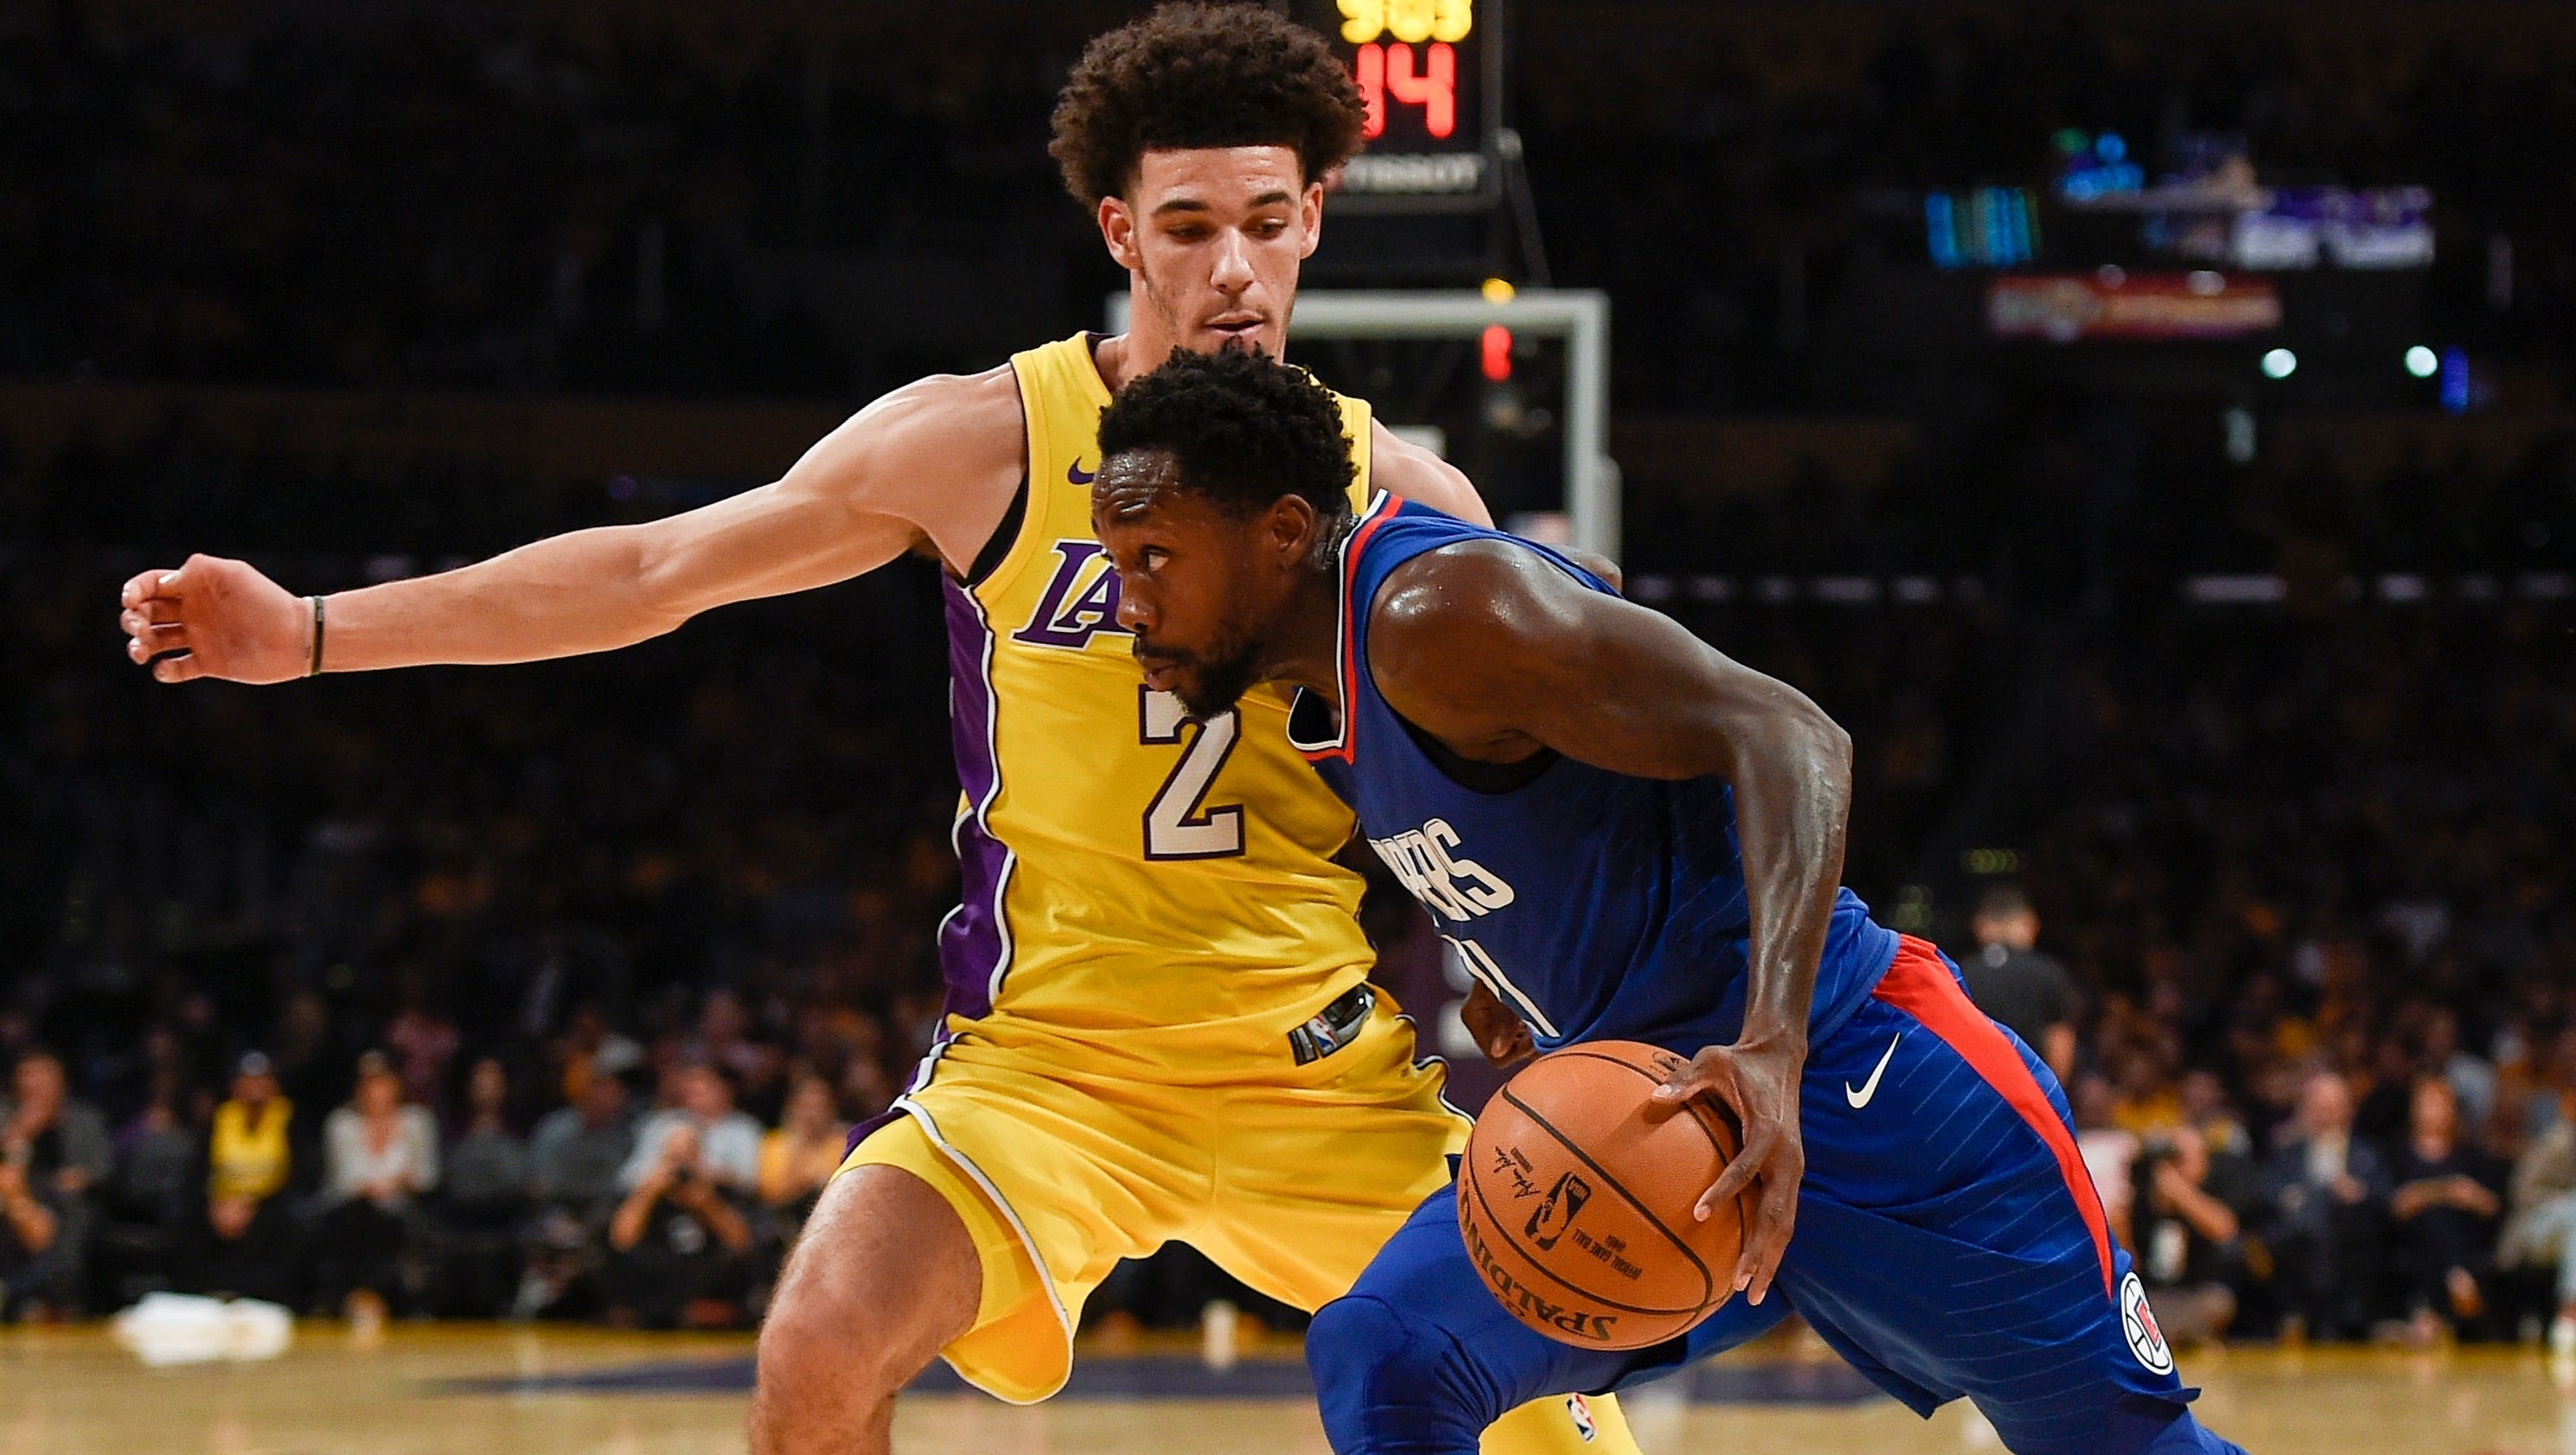 Lakers' Lonzo Ball gets rude 'welcome' to the NBA from Clippers' Patrick Beverley